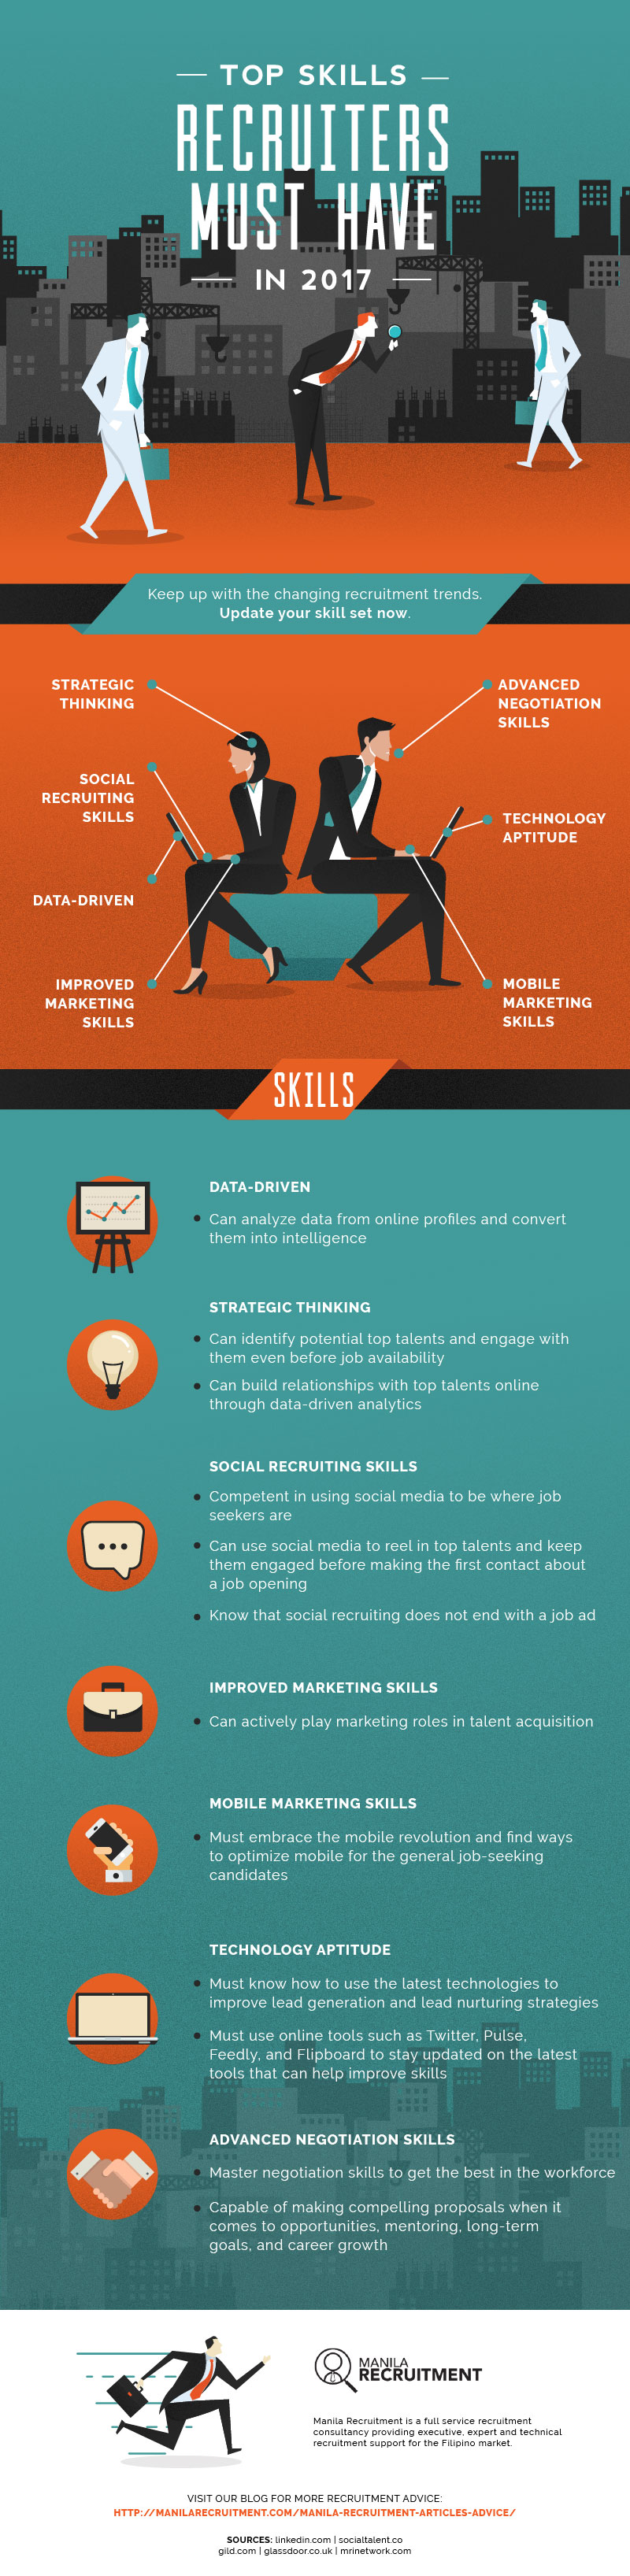 Top Skills Recruiters Must Have in 2017 (Infographic)